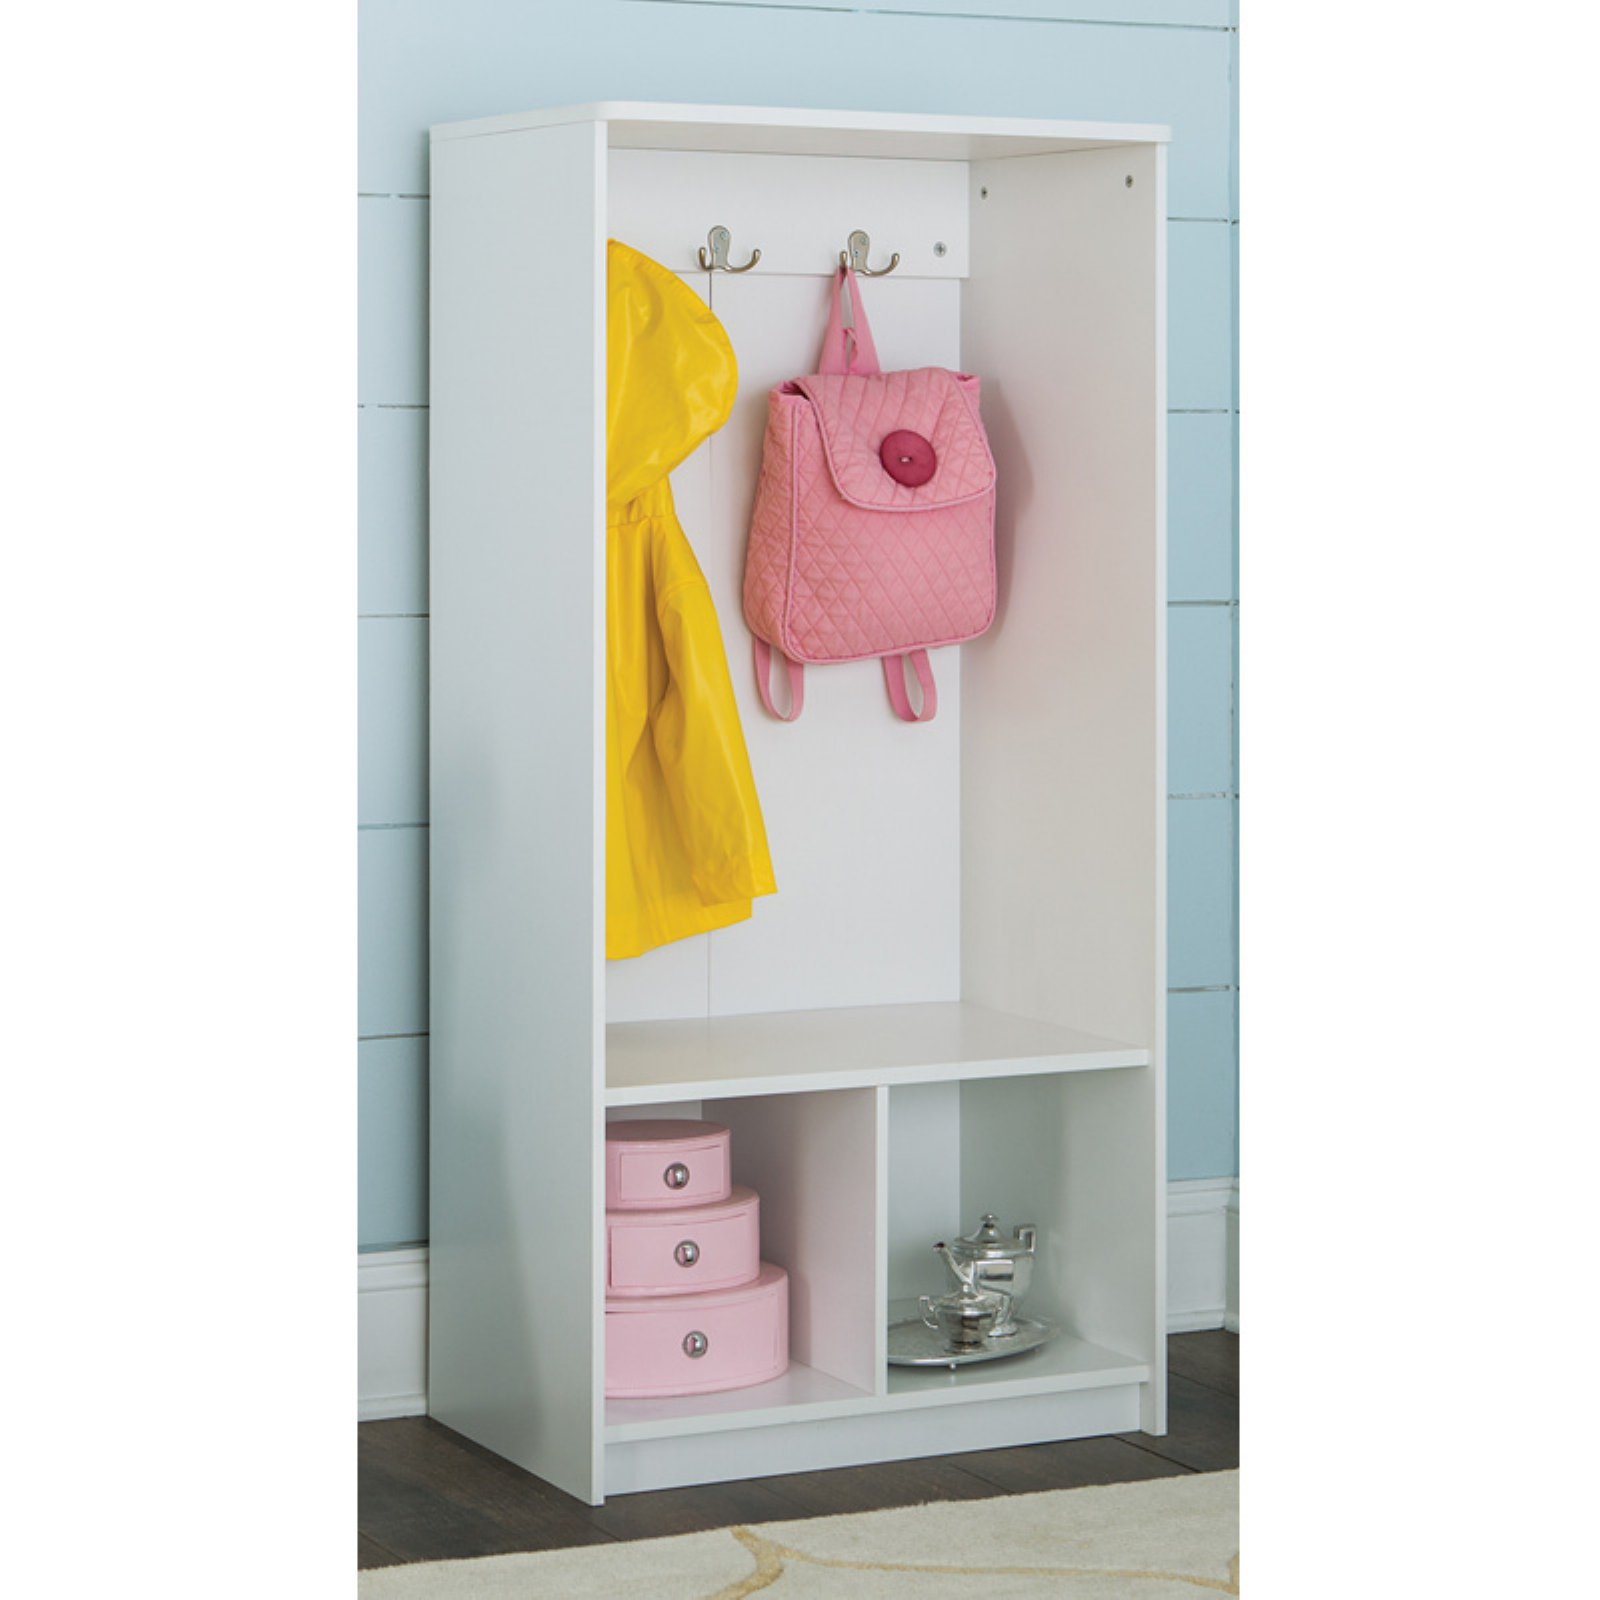 ClosetMaid KidSpace Two-Tier Storage Locker